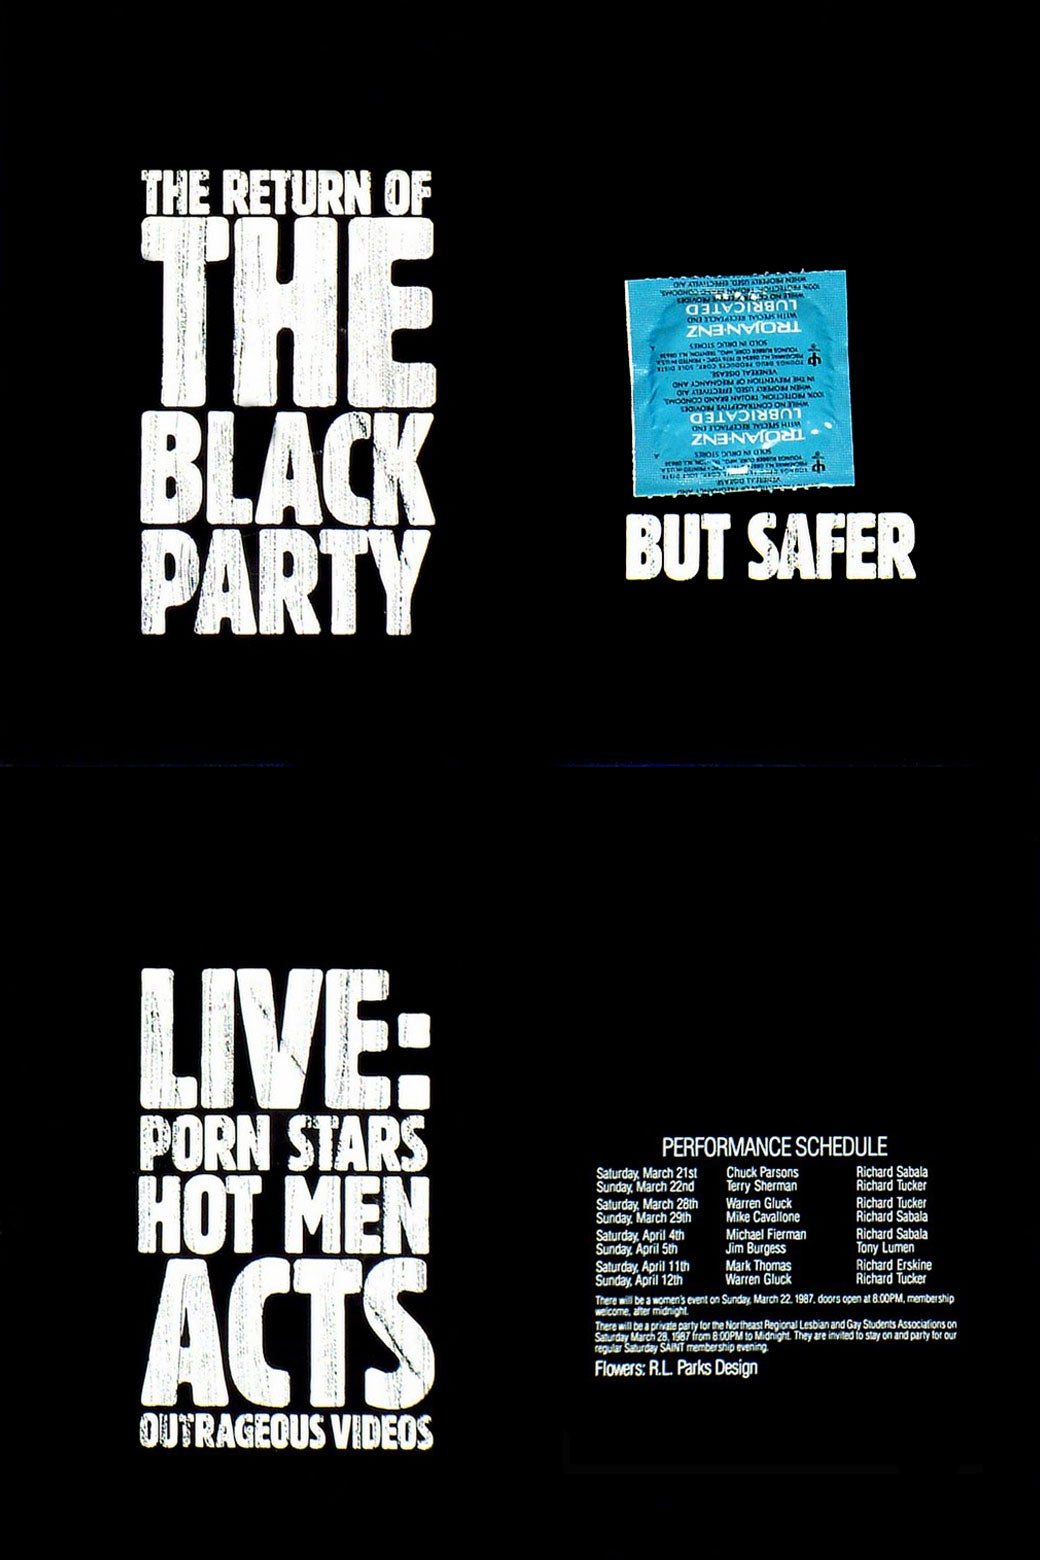 """Flyer reads """"THE RETURN OF THE BLACK PARTY"""" and """"BUT SAFER"""" with an image of a condom."""